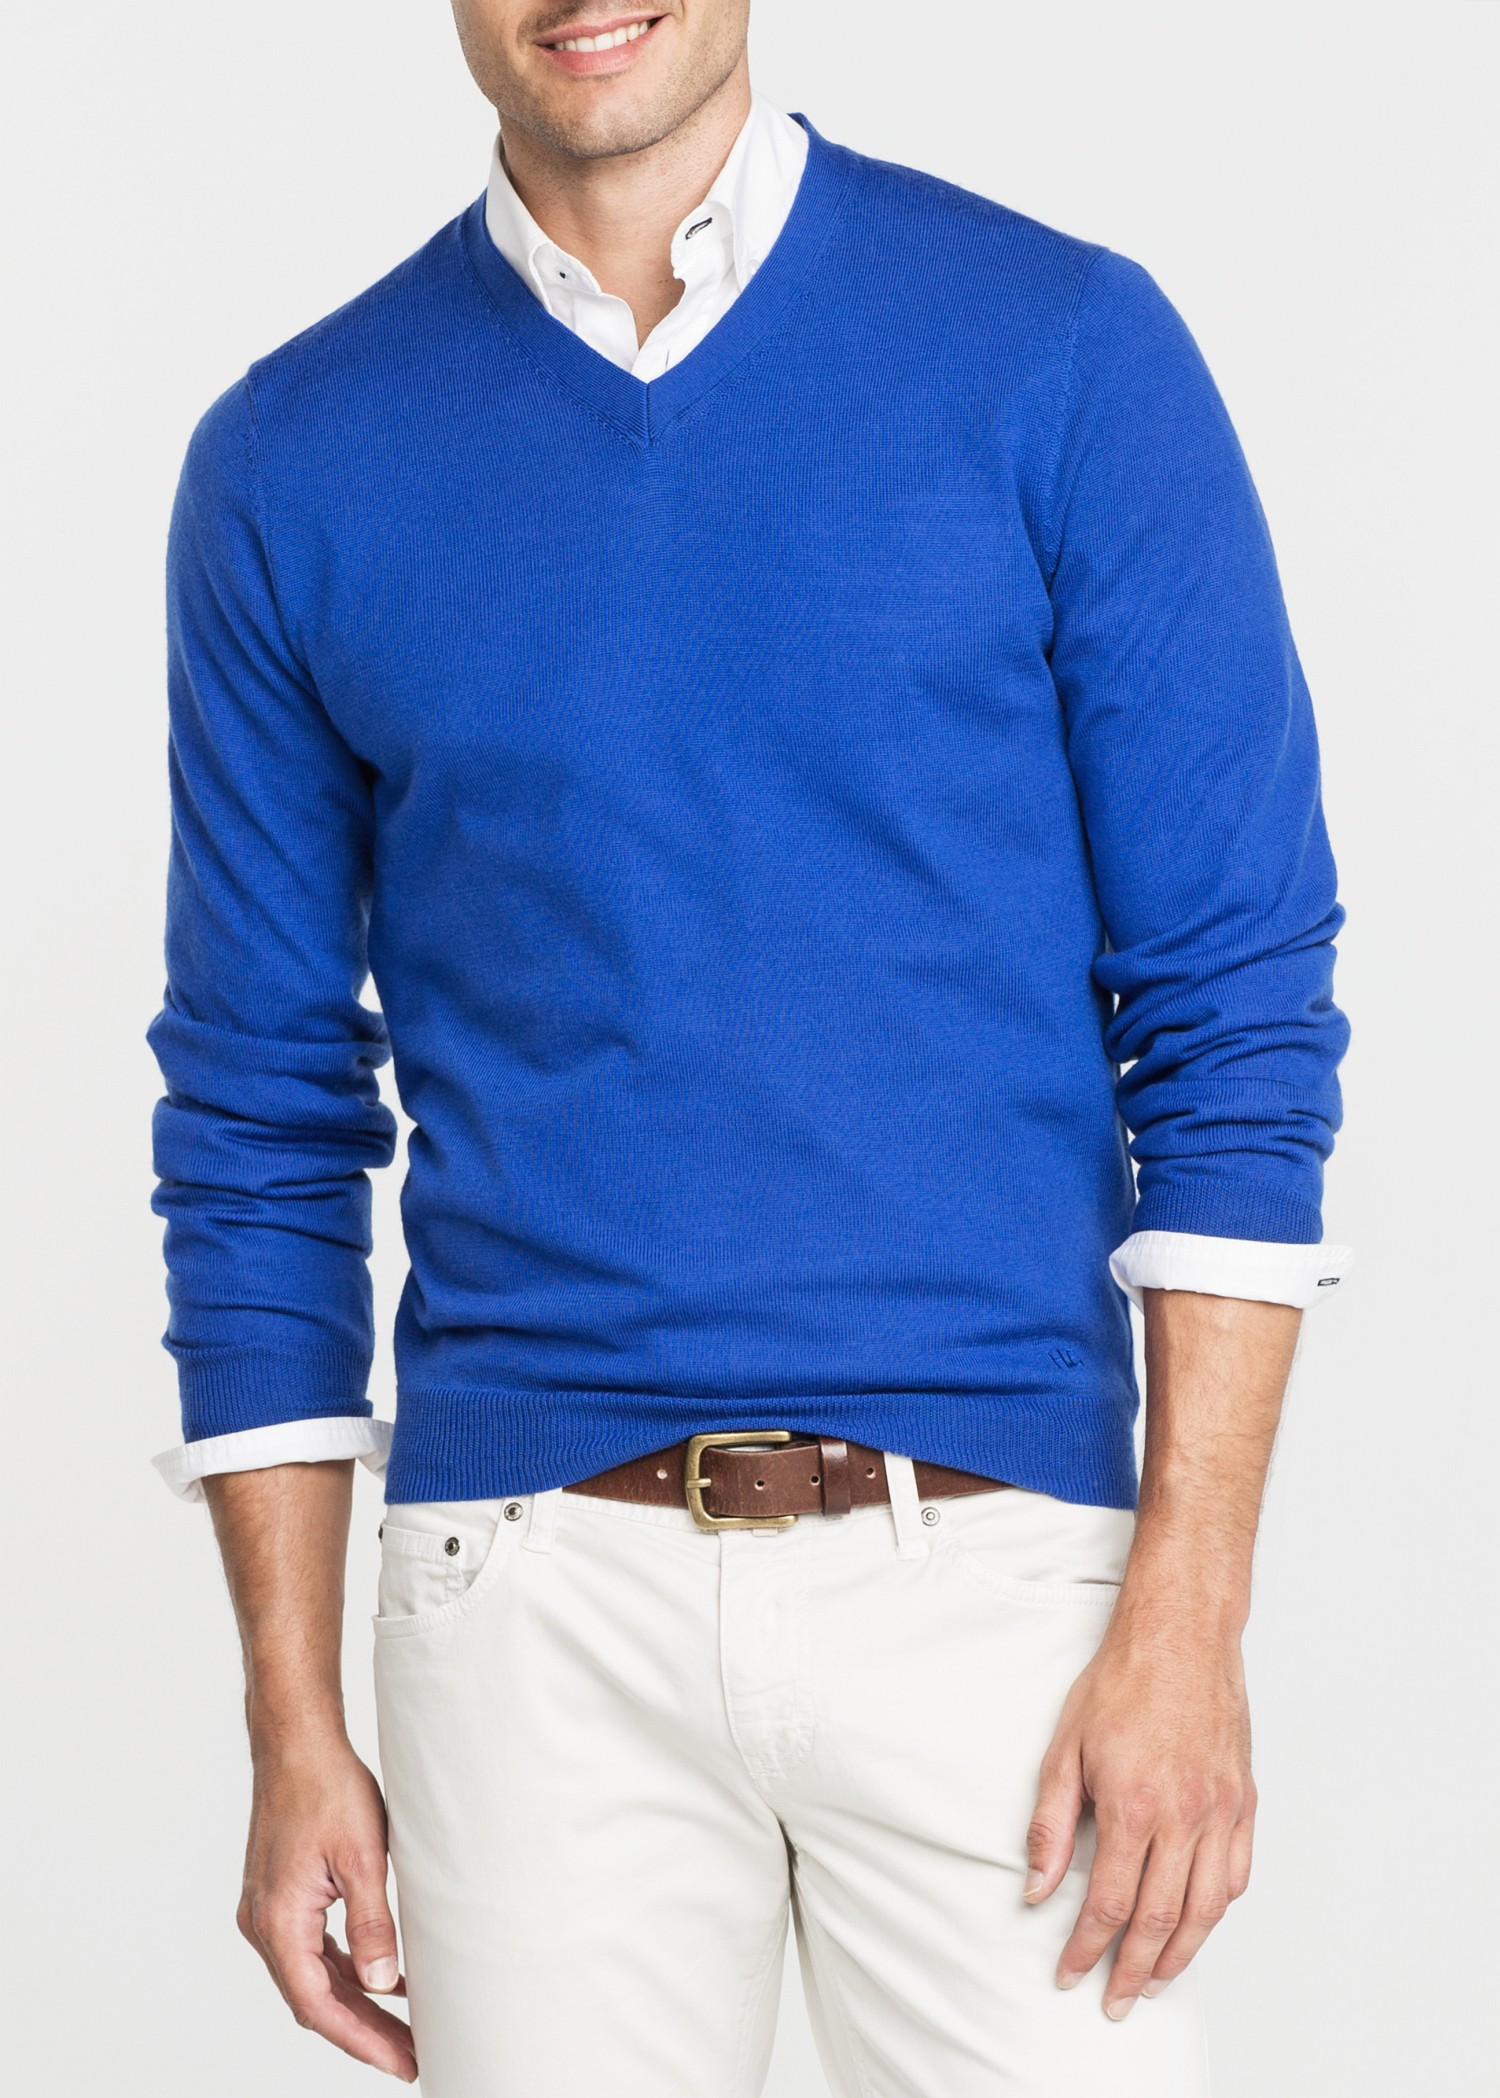 Cardigans are a classic favorite in men's clothing. Every man should have at least one staple cardigan in his closet for crisp fall nights or sunny spring mornings. v-neck sweaters are a fun twist on a classic, and they're polished and flattering.